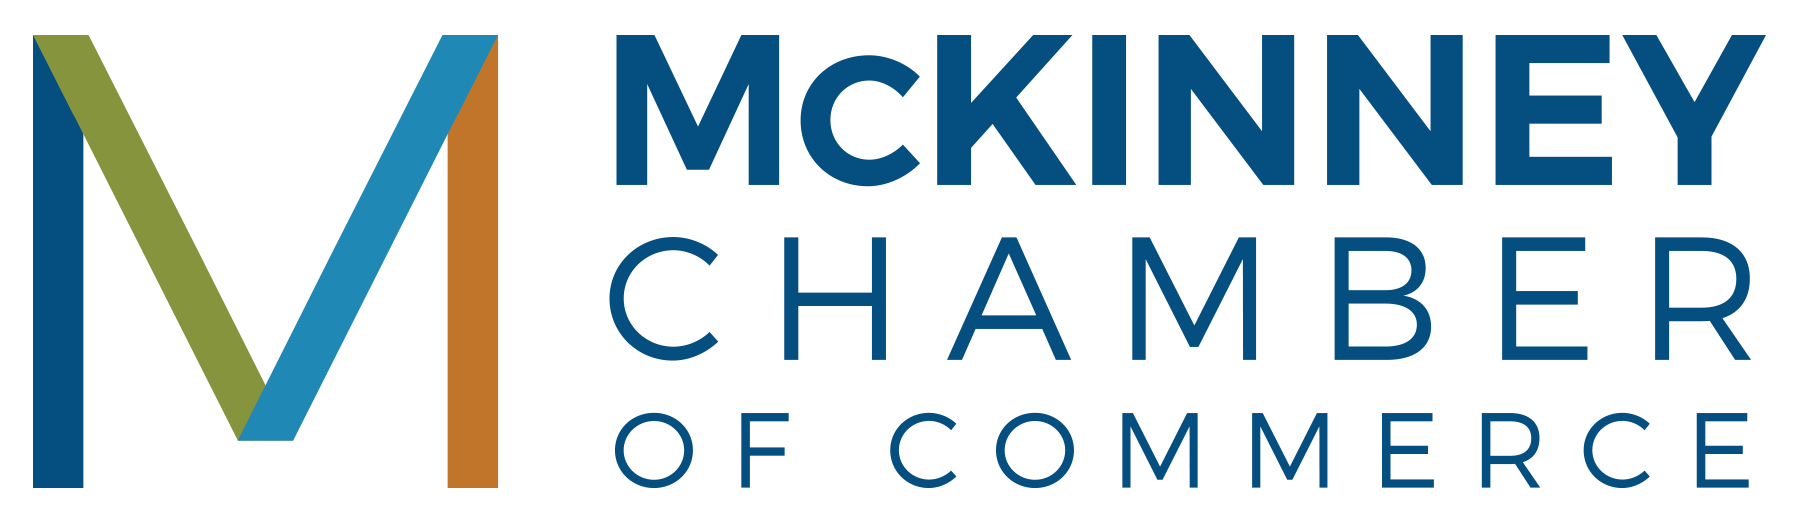 Chamber-logo.jpg